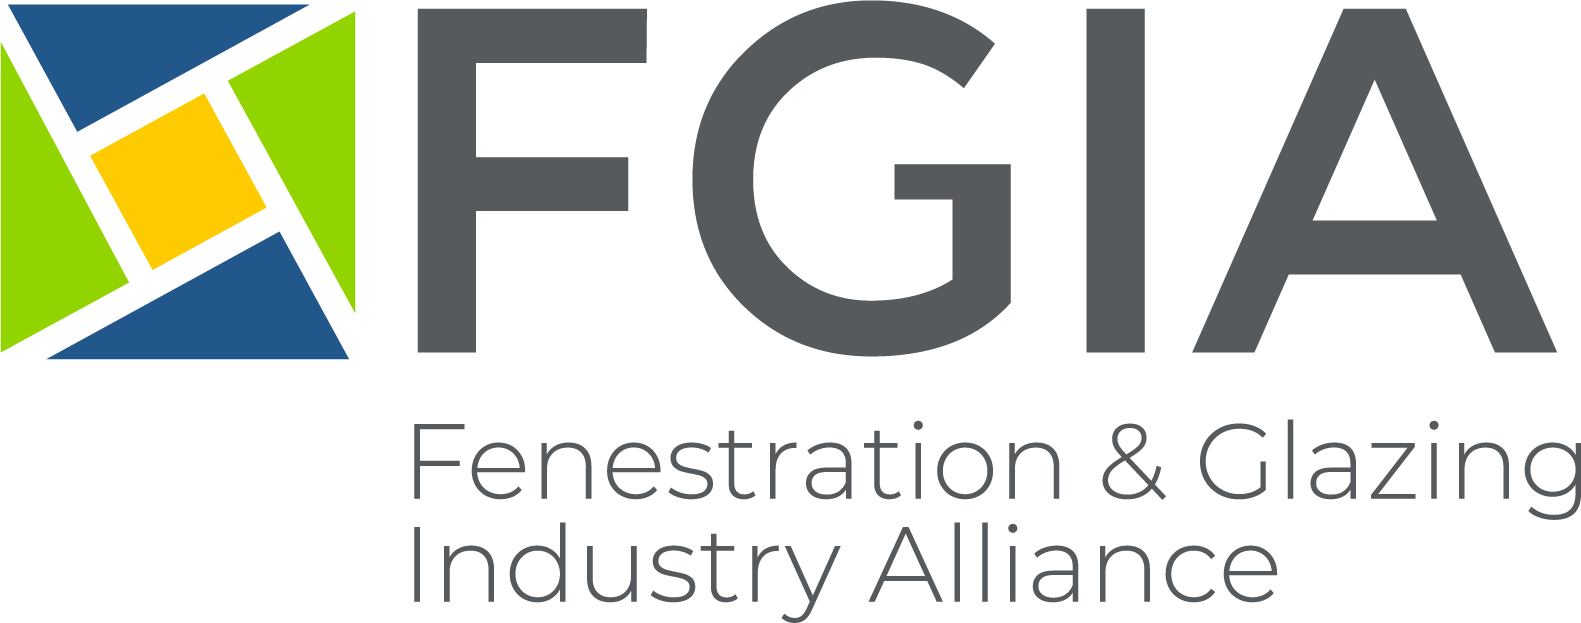 Fenestration and Glazing Industry Alliance logo